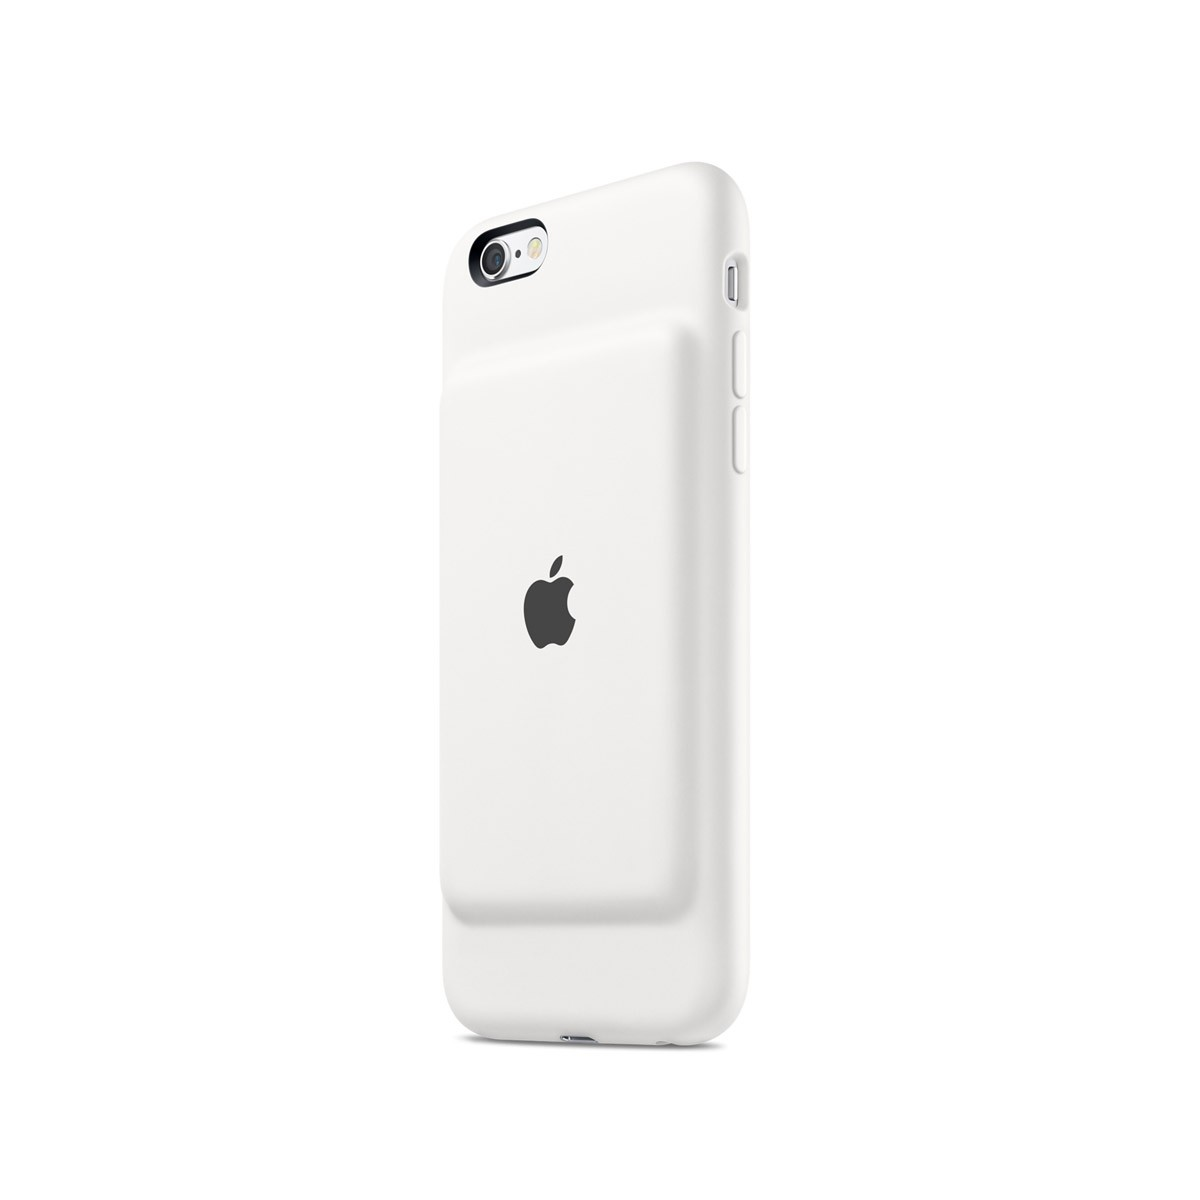 Apple - iPhone 6/6s Smart Battery Case - White